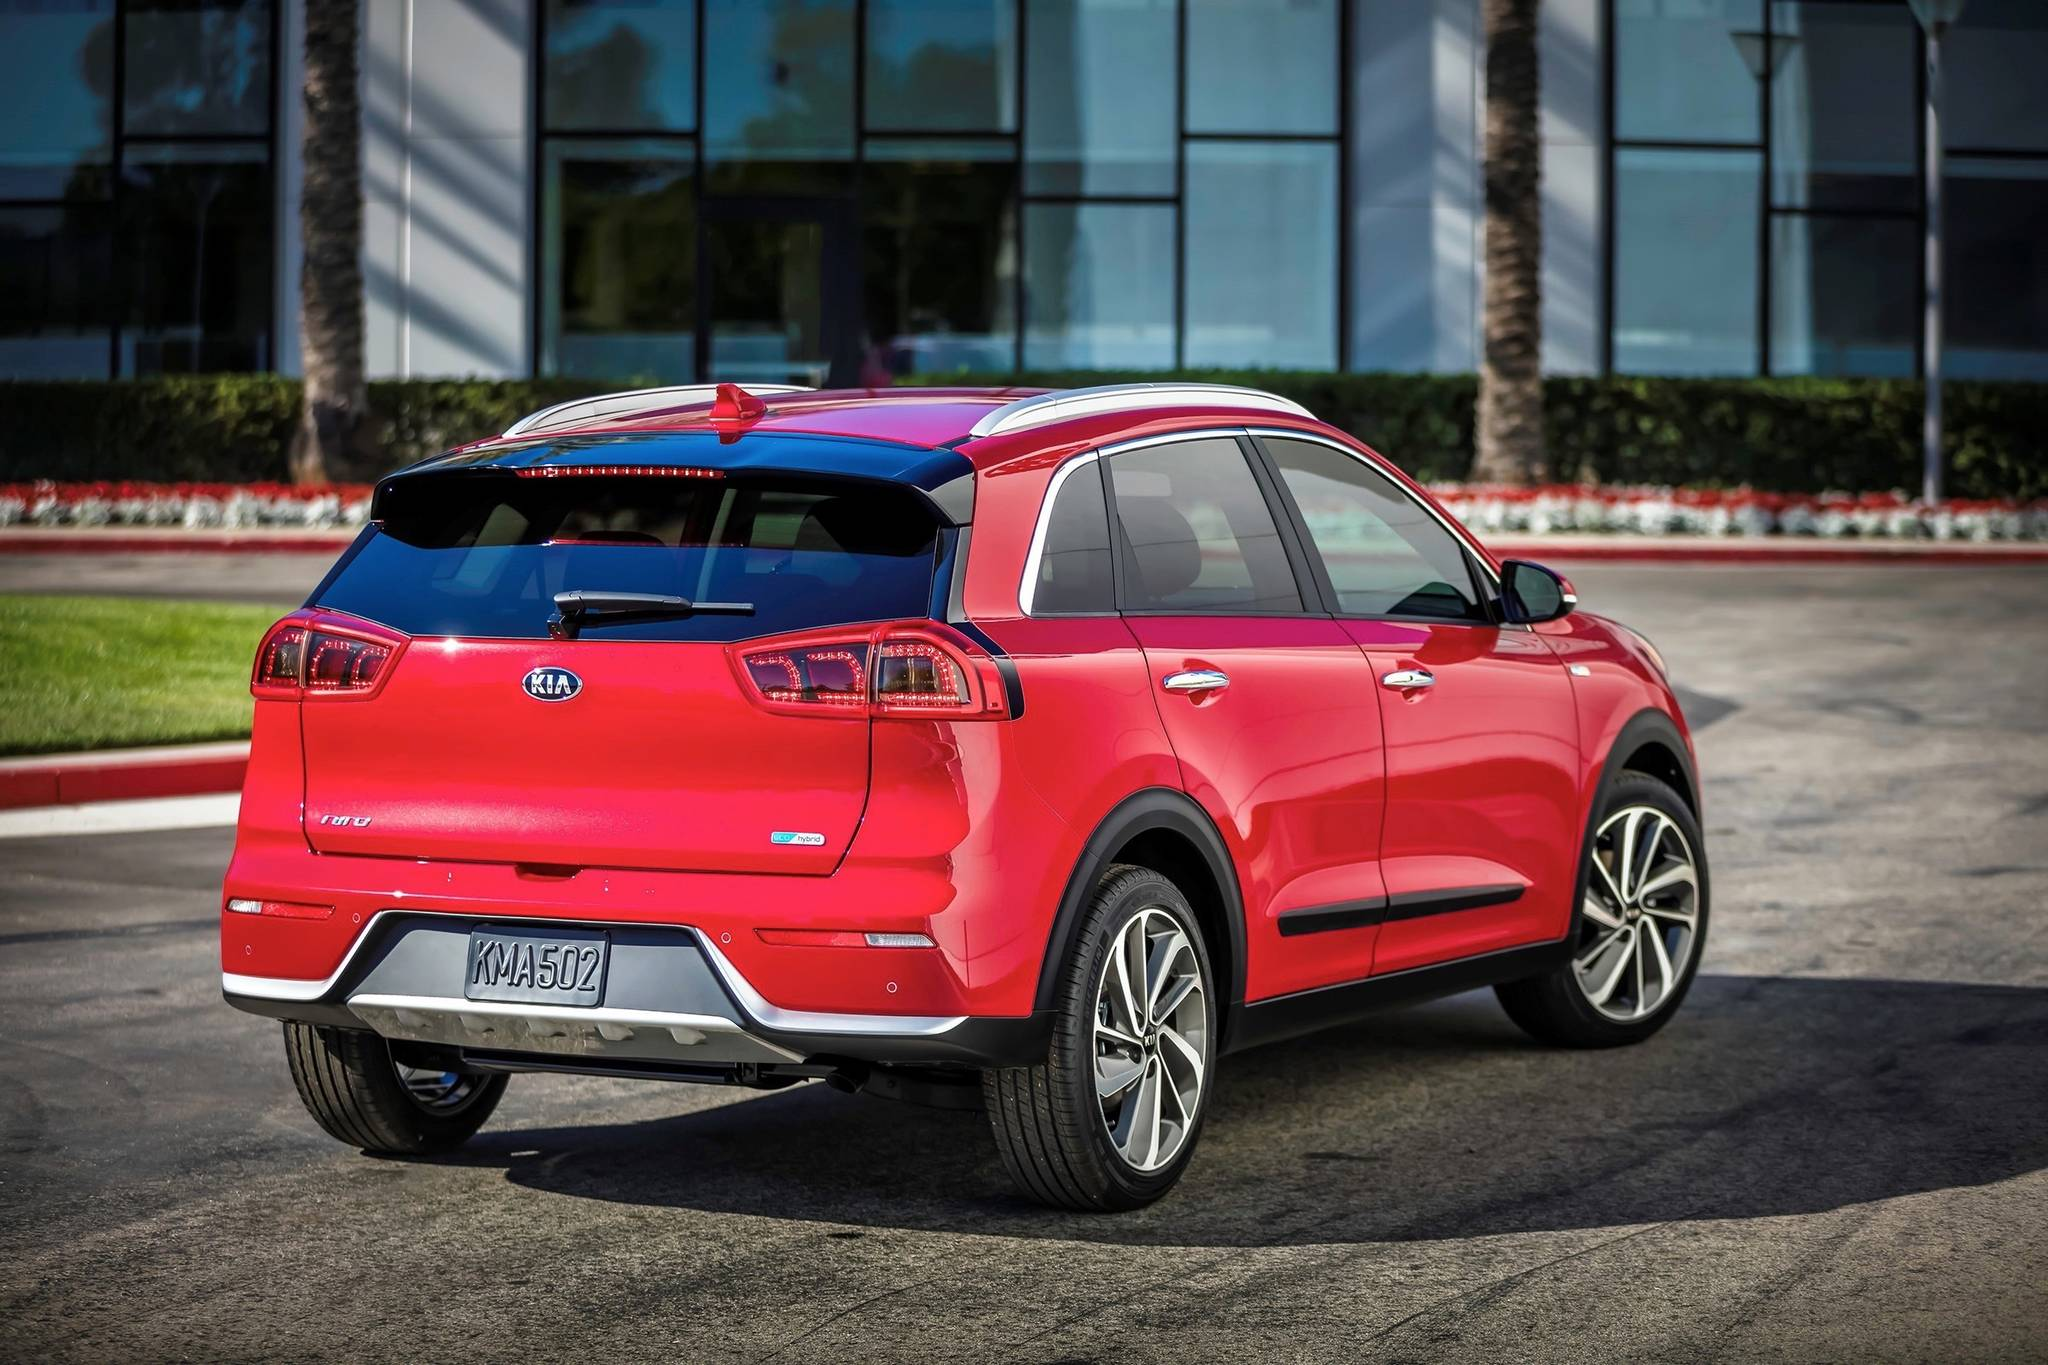 The Niro is built on a unique front-wheel-drive platform: The idea is to accommodate a variety powertrains, including the special needs of a 100 per cent electric model. Photo: KIA